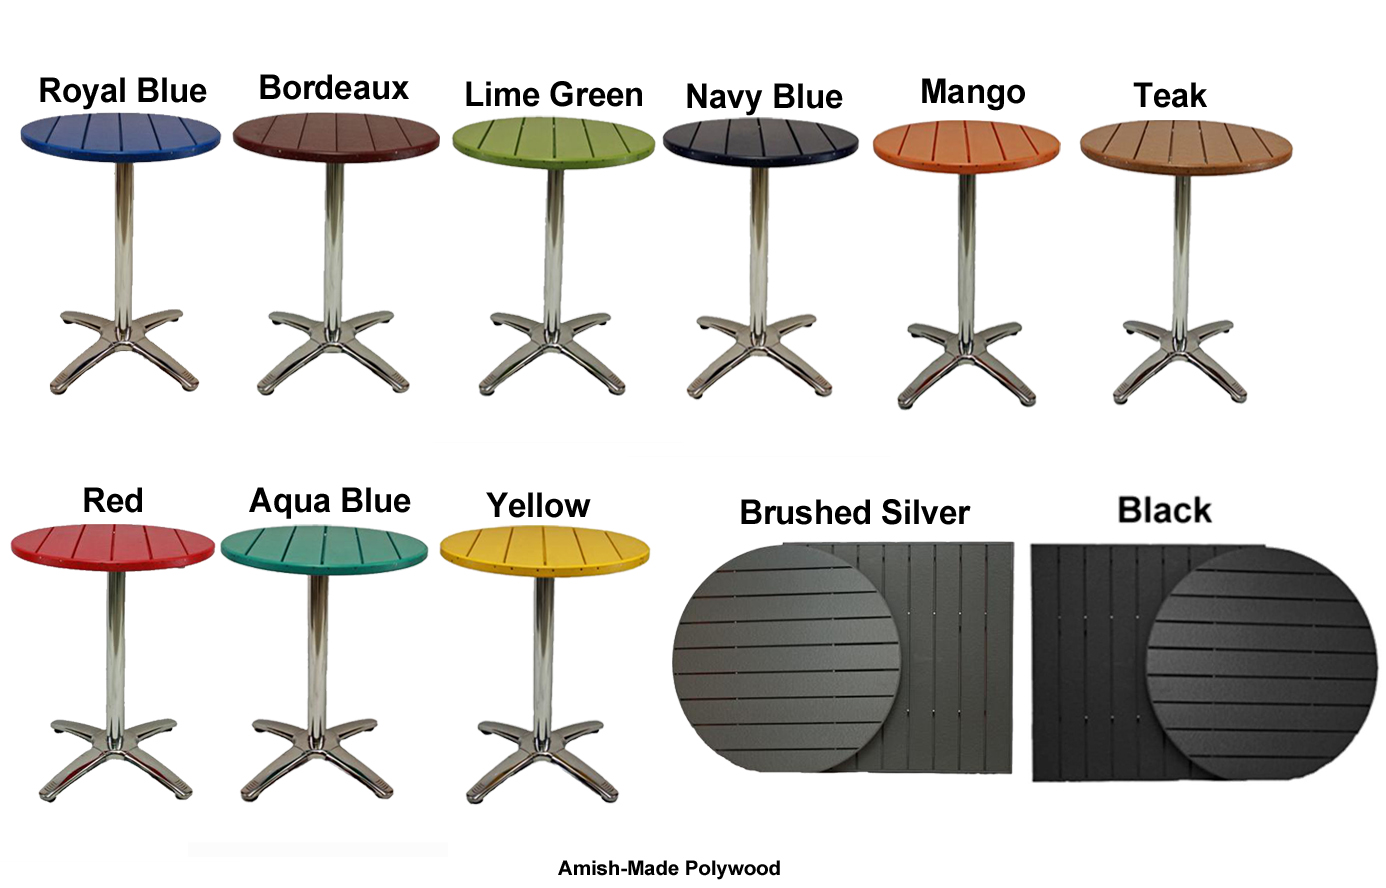 Commercial Outdoor Furniture - Outdoor table tops restaurant